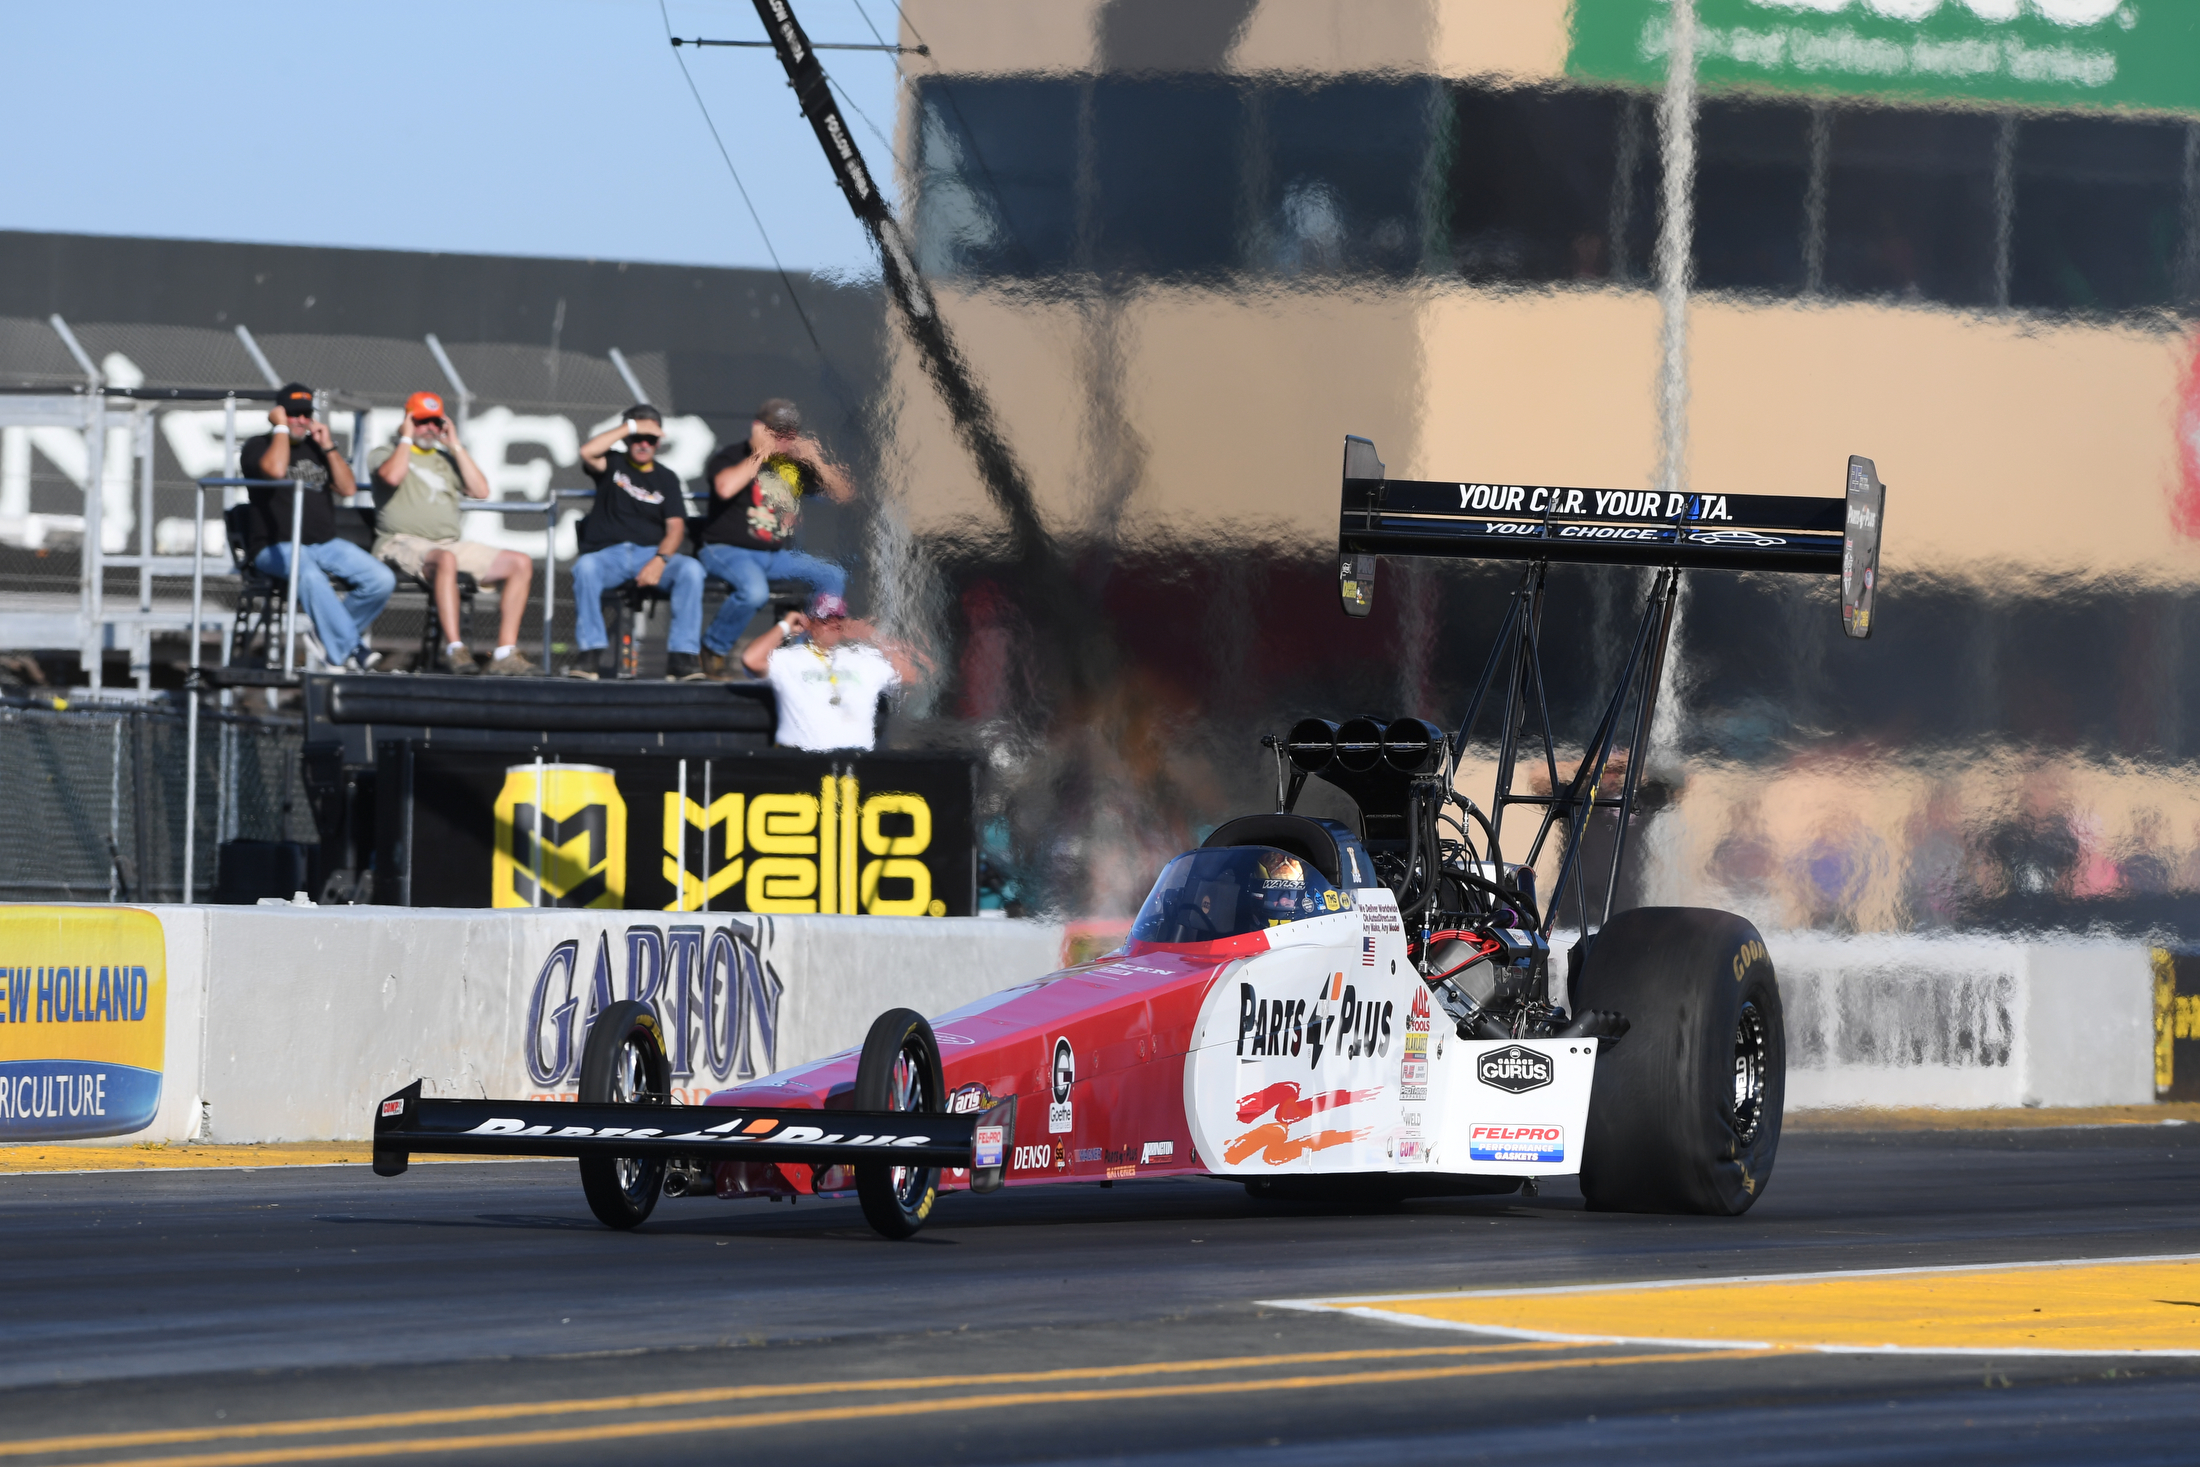 Top Fuel Dragster pilot Clay Millican racing at the 2019 Toyota NHRA Sonoma Nationals